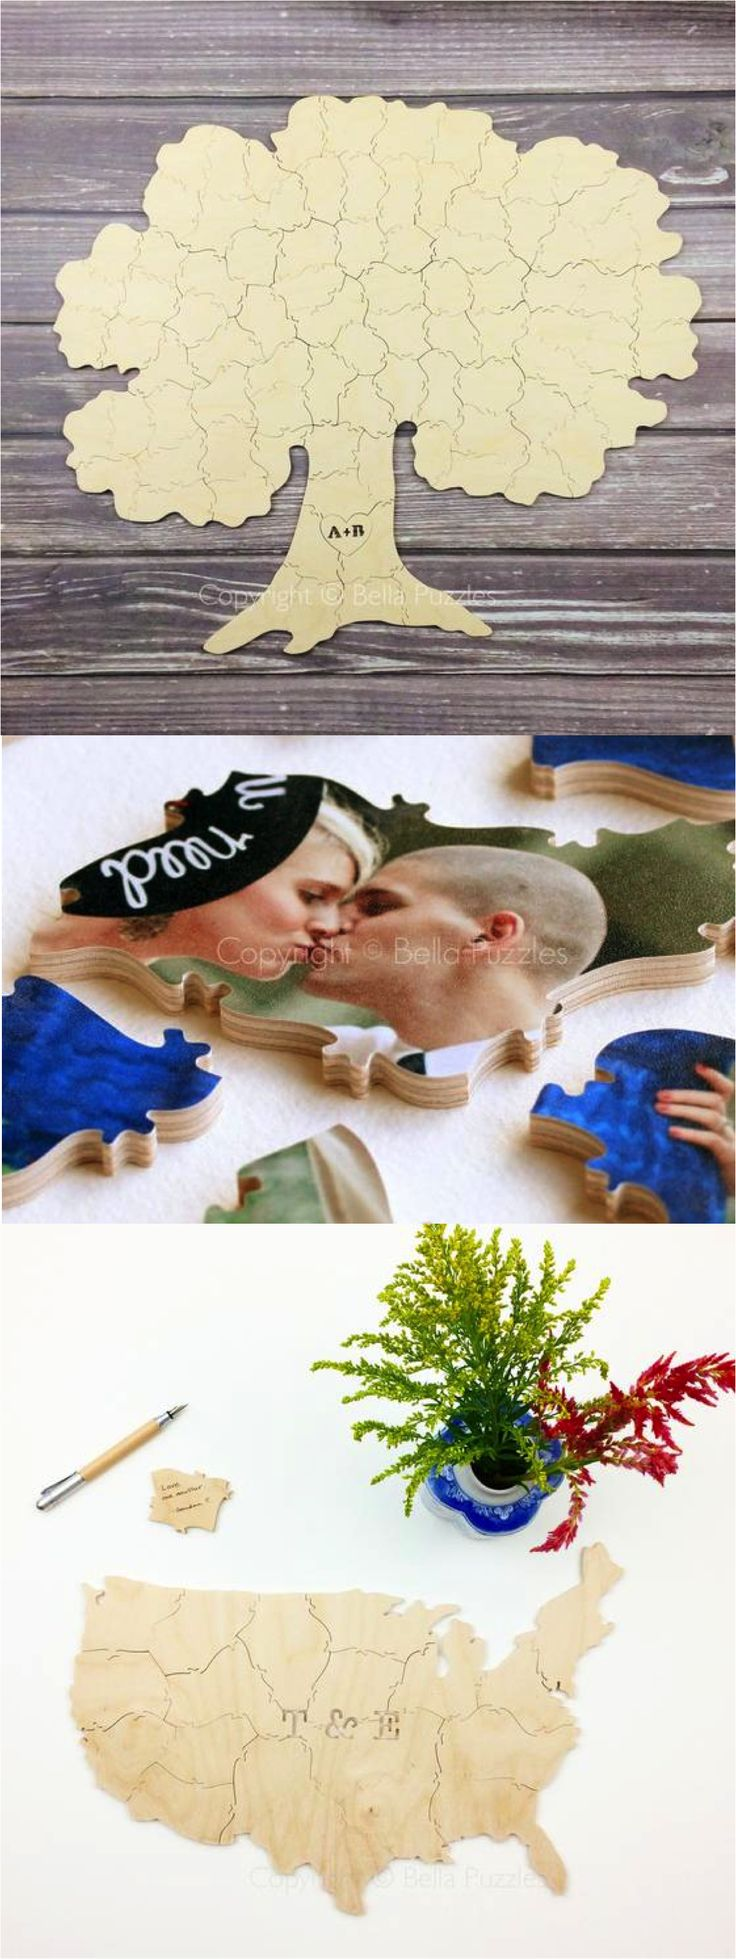 Gorgeous custom puzzles make the most beautiful and original alternative to wedding guest books. These can be personalized with your photo or even a state or country that has special meaning to you. Such a thoughtful and creative touch for your big day! | Made on Hatch.co by independent designers and makers who care!